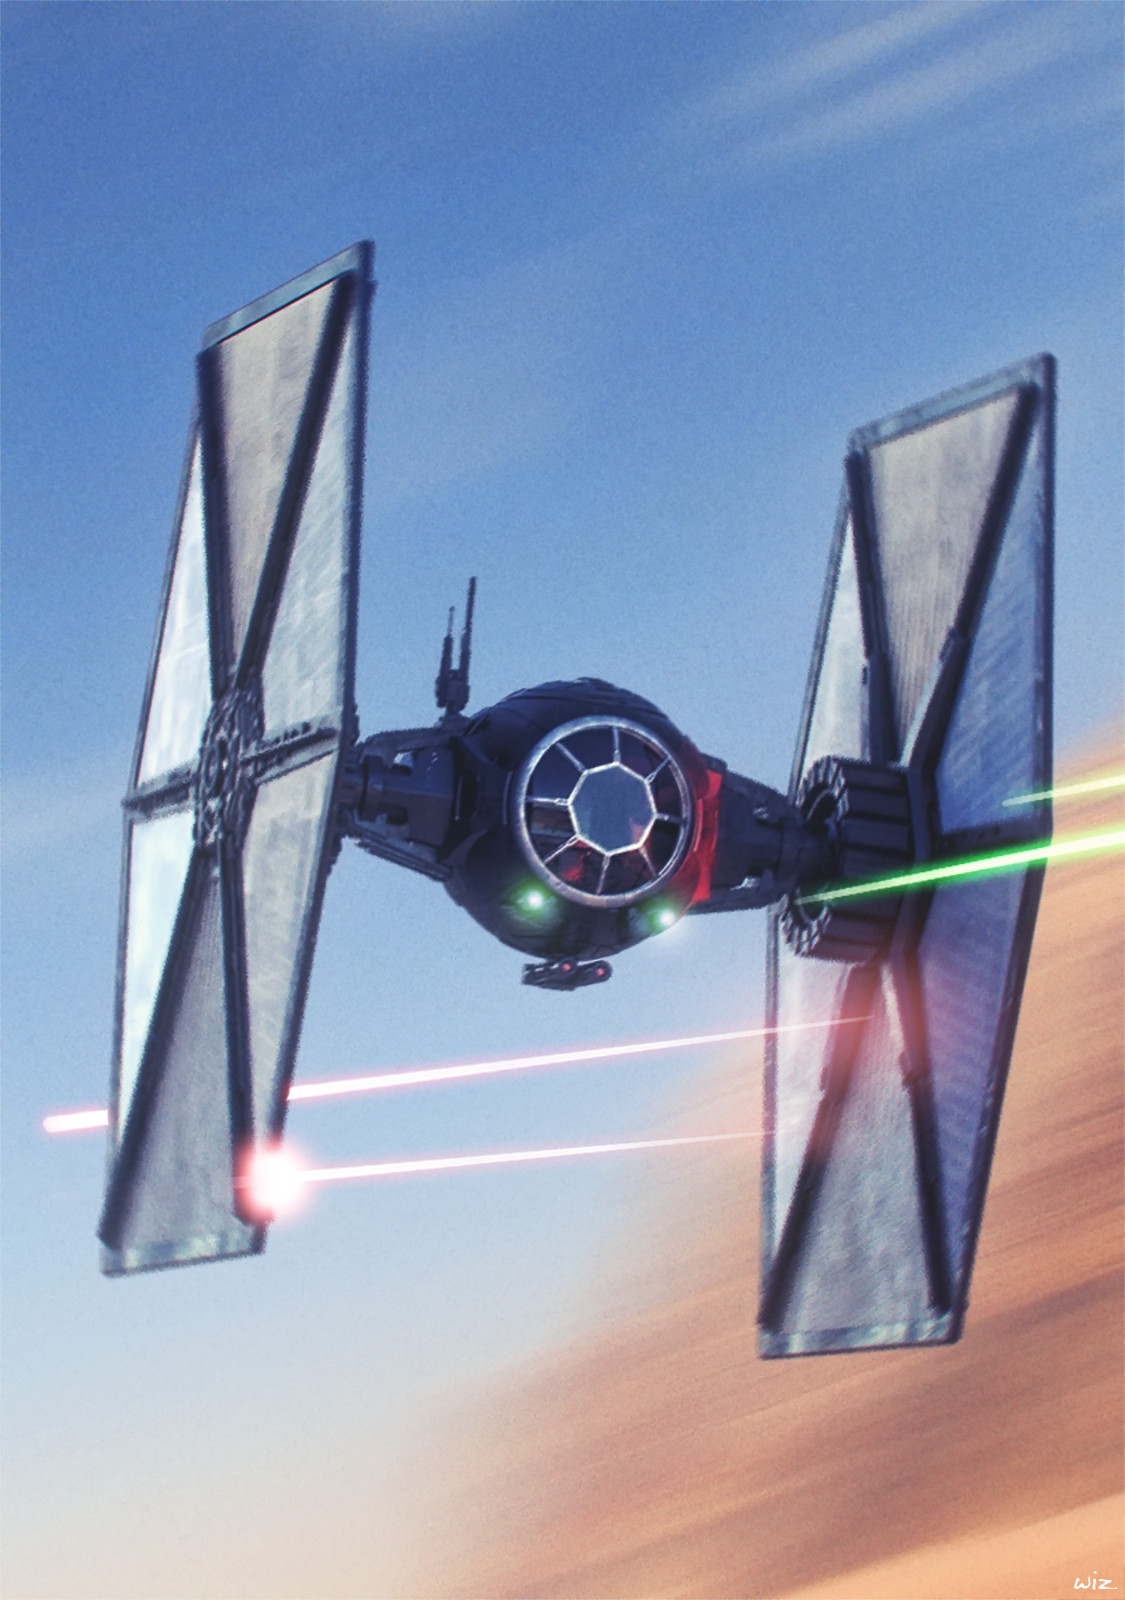 Paul wiz johnson starwars firstorder tiefighter